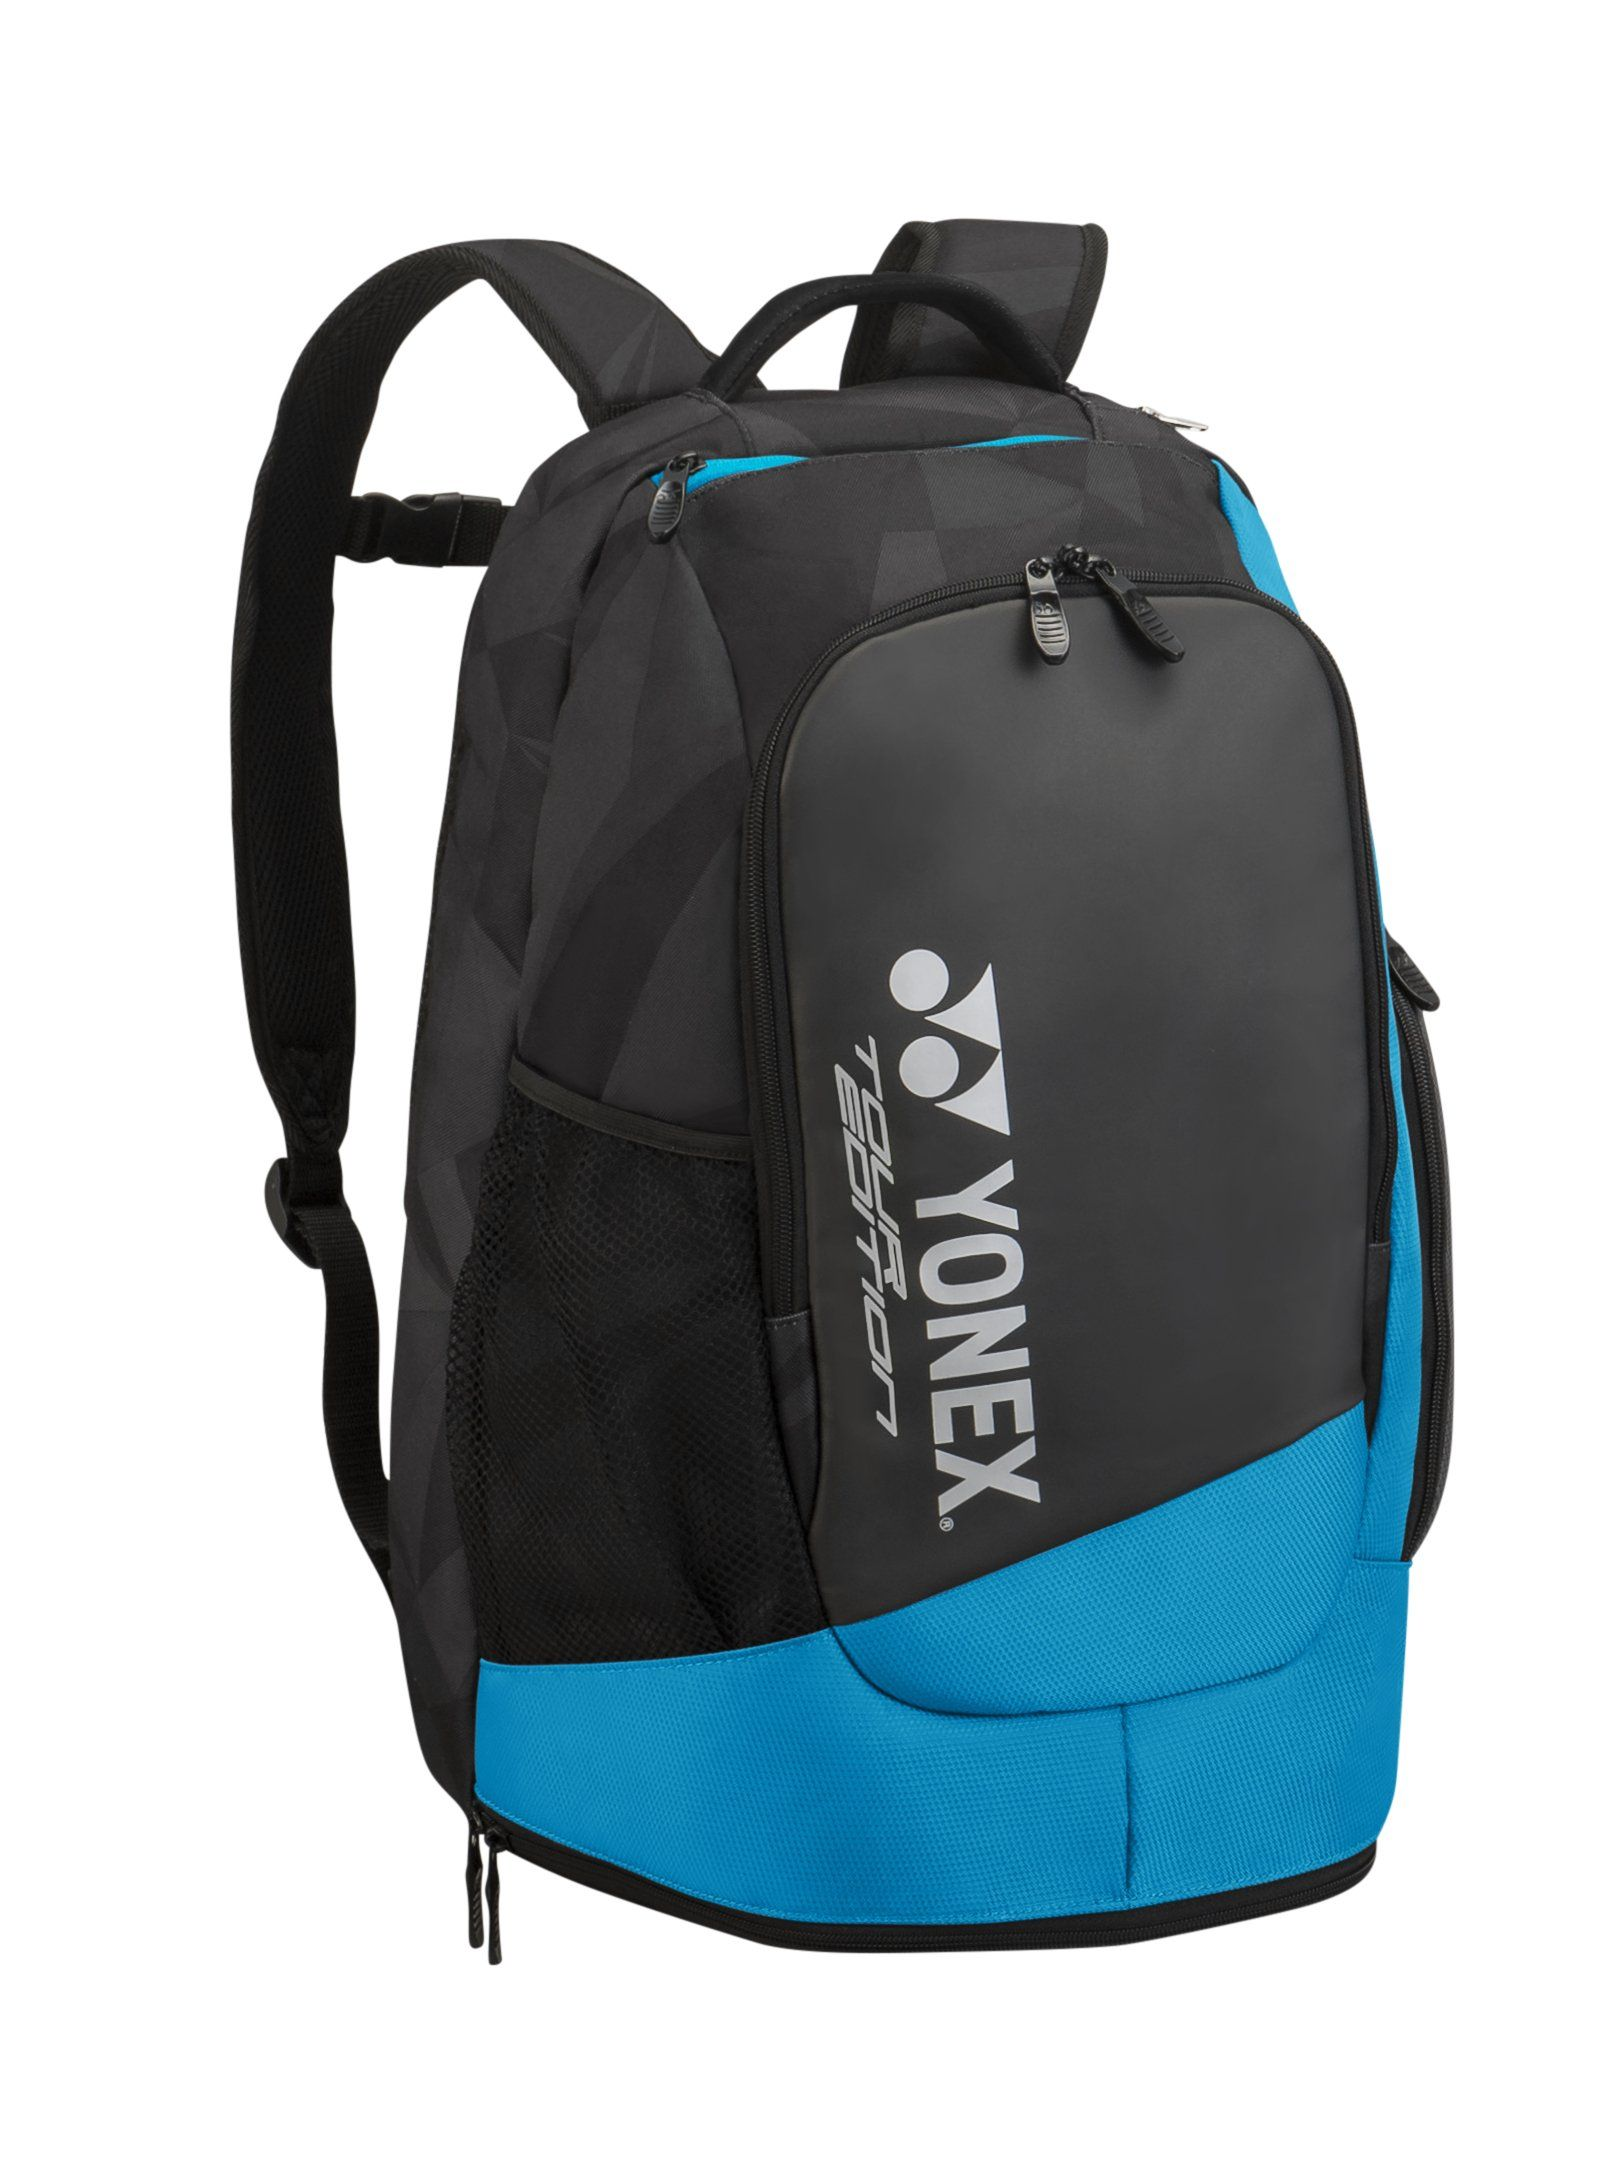 Yonex 9812 Pro Badminton Backpack Yonex Badminton Bag Badminton Bag Tennis Backpack